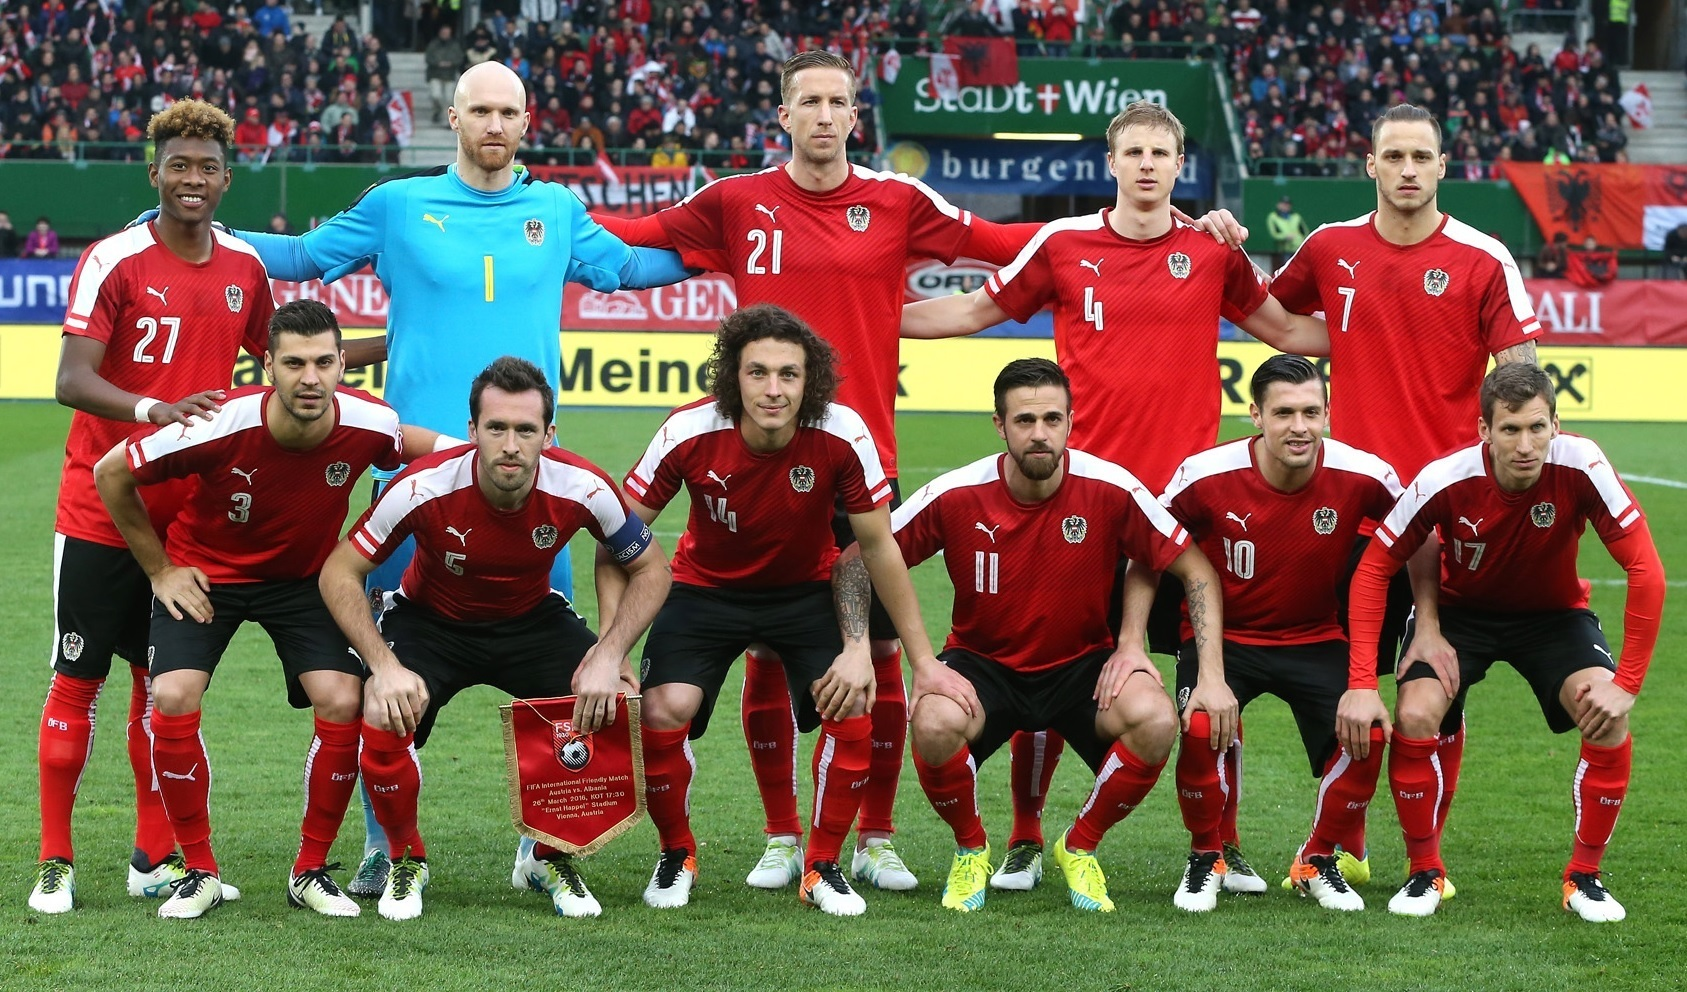 Austria-2016-PUMA-EURO-away-kit-red-black-red-line-up.jpg